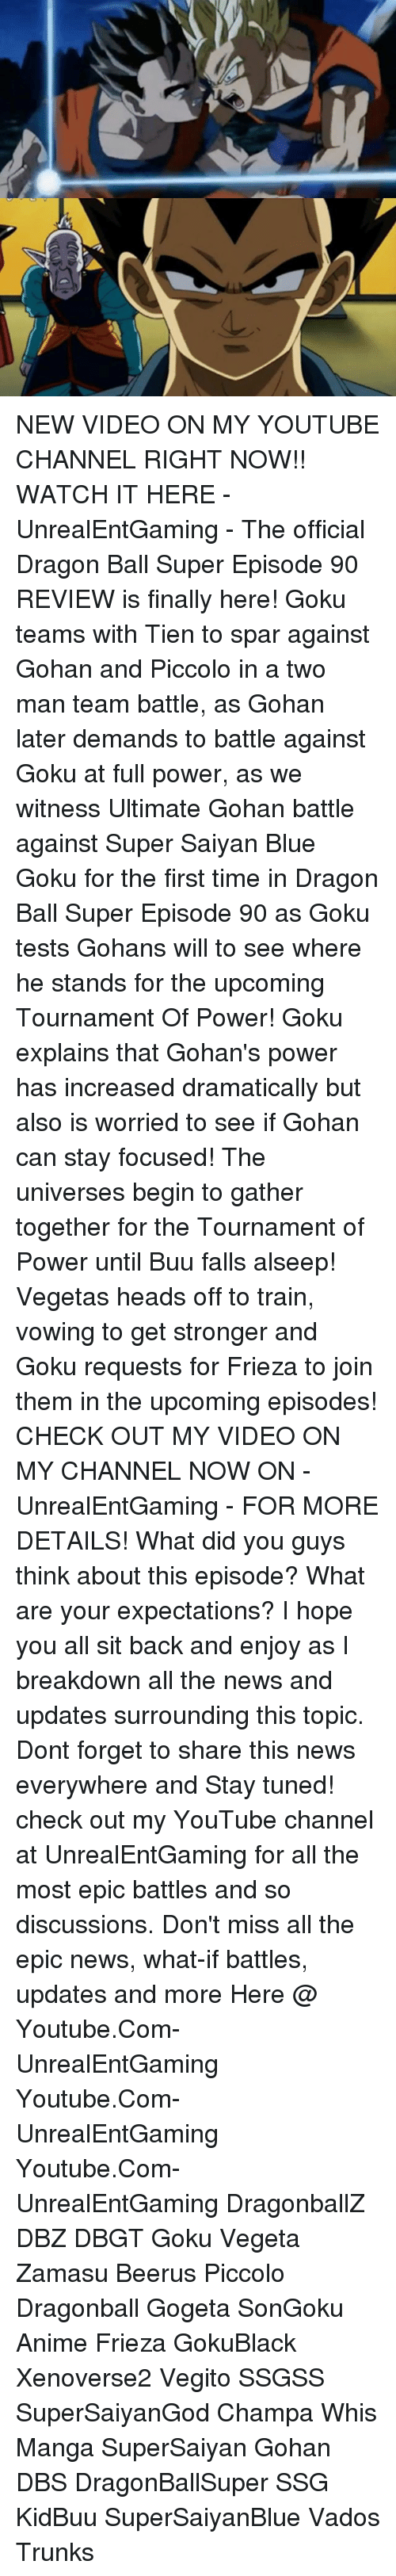 tien: NEW VIDEO ON MY YOUTUBE CHANNEL RIGHT NOW!! WATCH IT HERE - UnrealEntGaming - The official Dragon Ball Super Episode 90 REVIEW is finally here! Goku teams with Tien to spar against Gohan and Piccolo in a two man team battle, as Gohan later demands to battle against Goku at full power, as we witness Ultimate Gohan battle against Super Saiyan Blue Goku for the first time in Dragon Ball Super Episode 90 as Goku tests Gohans will to see where he stands for the upcoming Tournament Of Power! Goku explains that Gohan's power has increased dramatically but also is worried to see if Gohan can stay focused! The universes begin to gather together for the Tournament of Power until Buu falls alseep! Vegetas heads off to train, vowing to get stronger and Goku requests for Frieza to join them in the upcoming episodes! CHECK OUT MY VIDEO ON MY CHANNEL NOW ON -UnrealEntGaming - FOR MORE DETAILS! What did you guys think about this episode? What are your expectations? I hope you all sit back and enjoy as I breakdown all the news and updates surrounding this topic. Dont forget to share this news everywhere and Stay tuned! check out my YouTube channel at UnrealEntGaming for all the most epic battles and so discussions. Don't miss all the epic news, what-if battles, updates and more Here @ Youtube.Com-UnrealEntGaming Youtube.Com-UnrealEntGaming Youtube.Com-UnrealEntGaming DragonballZ DBZ DBGT Goku Vegeta Zamasu Beerus Piccolo Dragonball Gogeta SonGoku Anime Frieza GokuBlack Xenoverse2 Vegito SSGSS SuperSaiyanGod Champa Whis Manga SuperSaiyan Gohan DBS DragonBallSuper SSG KidBuu SuperSaiyanBlue Vados Trunks